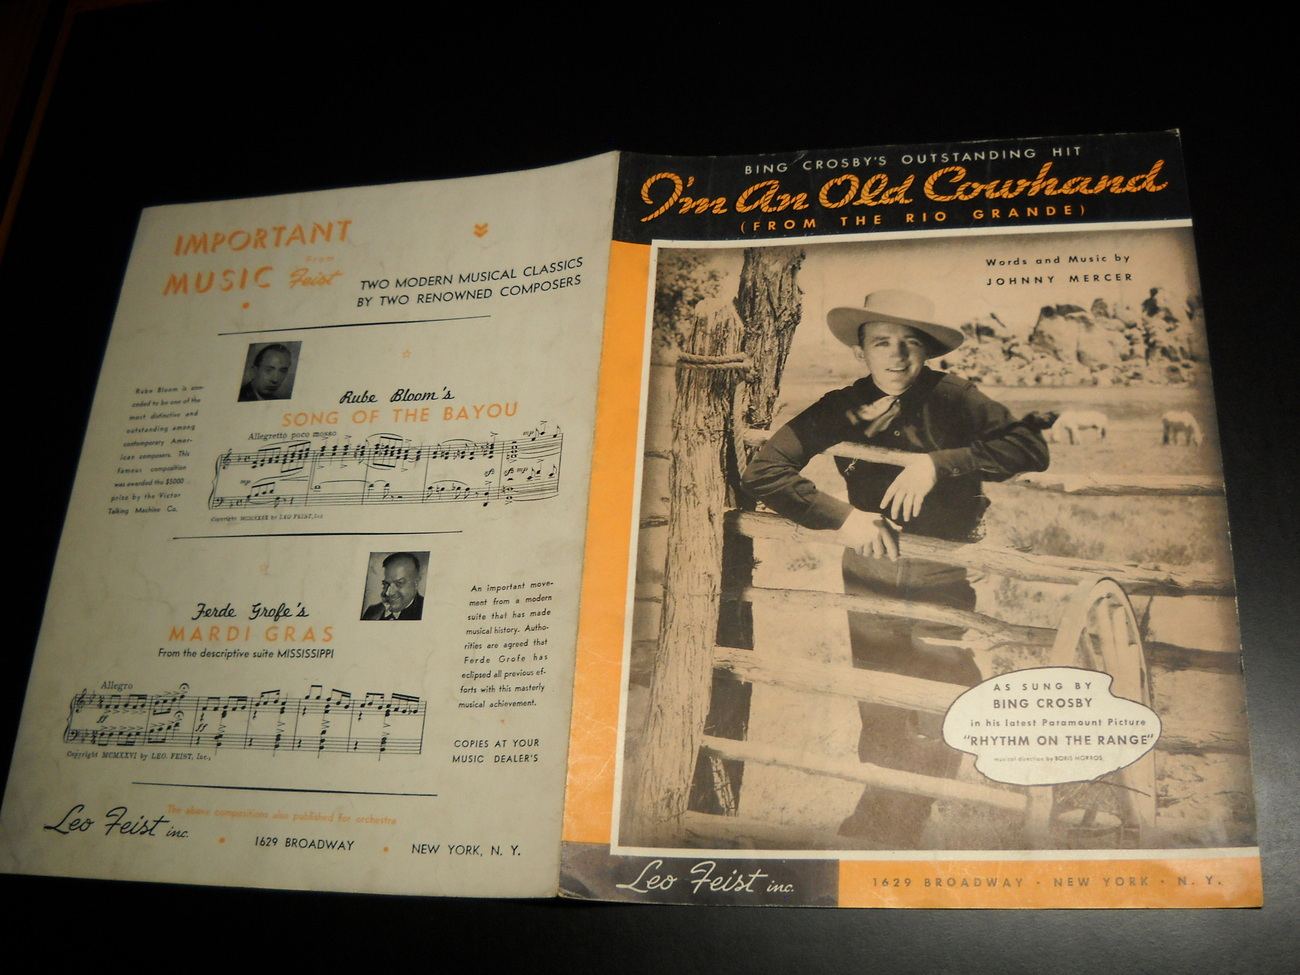 Sheet_music_i_m_an_old_cowhand_from_the_rio_grande_rhythm_on_the_range_crosby_1936_leo_feist_music_04